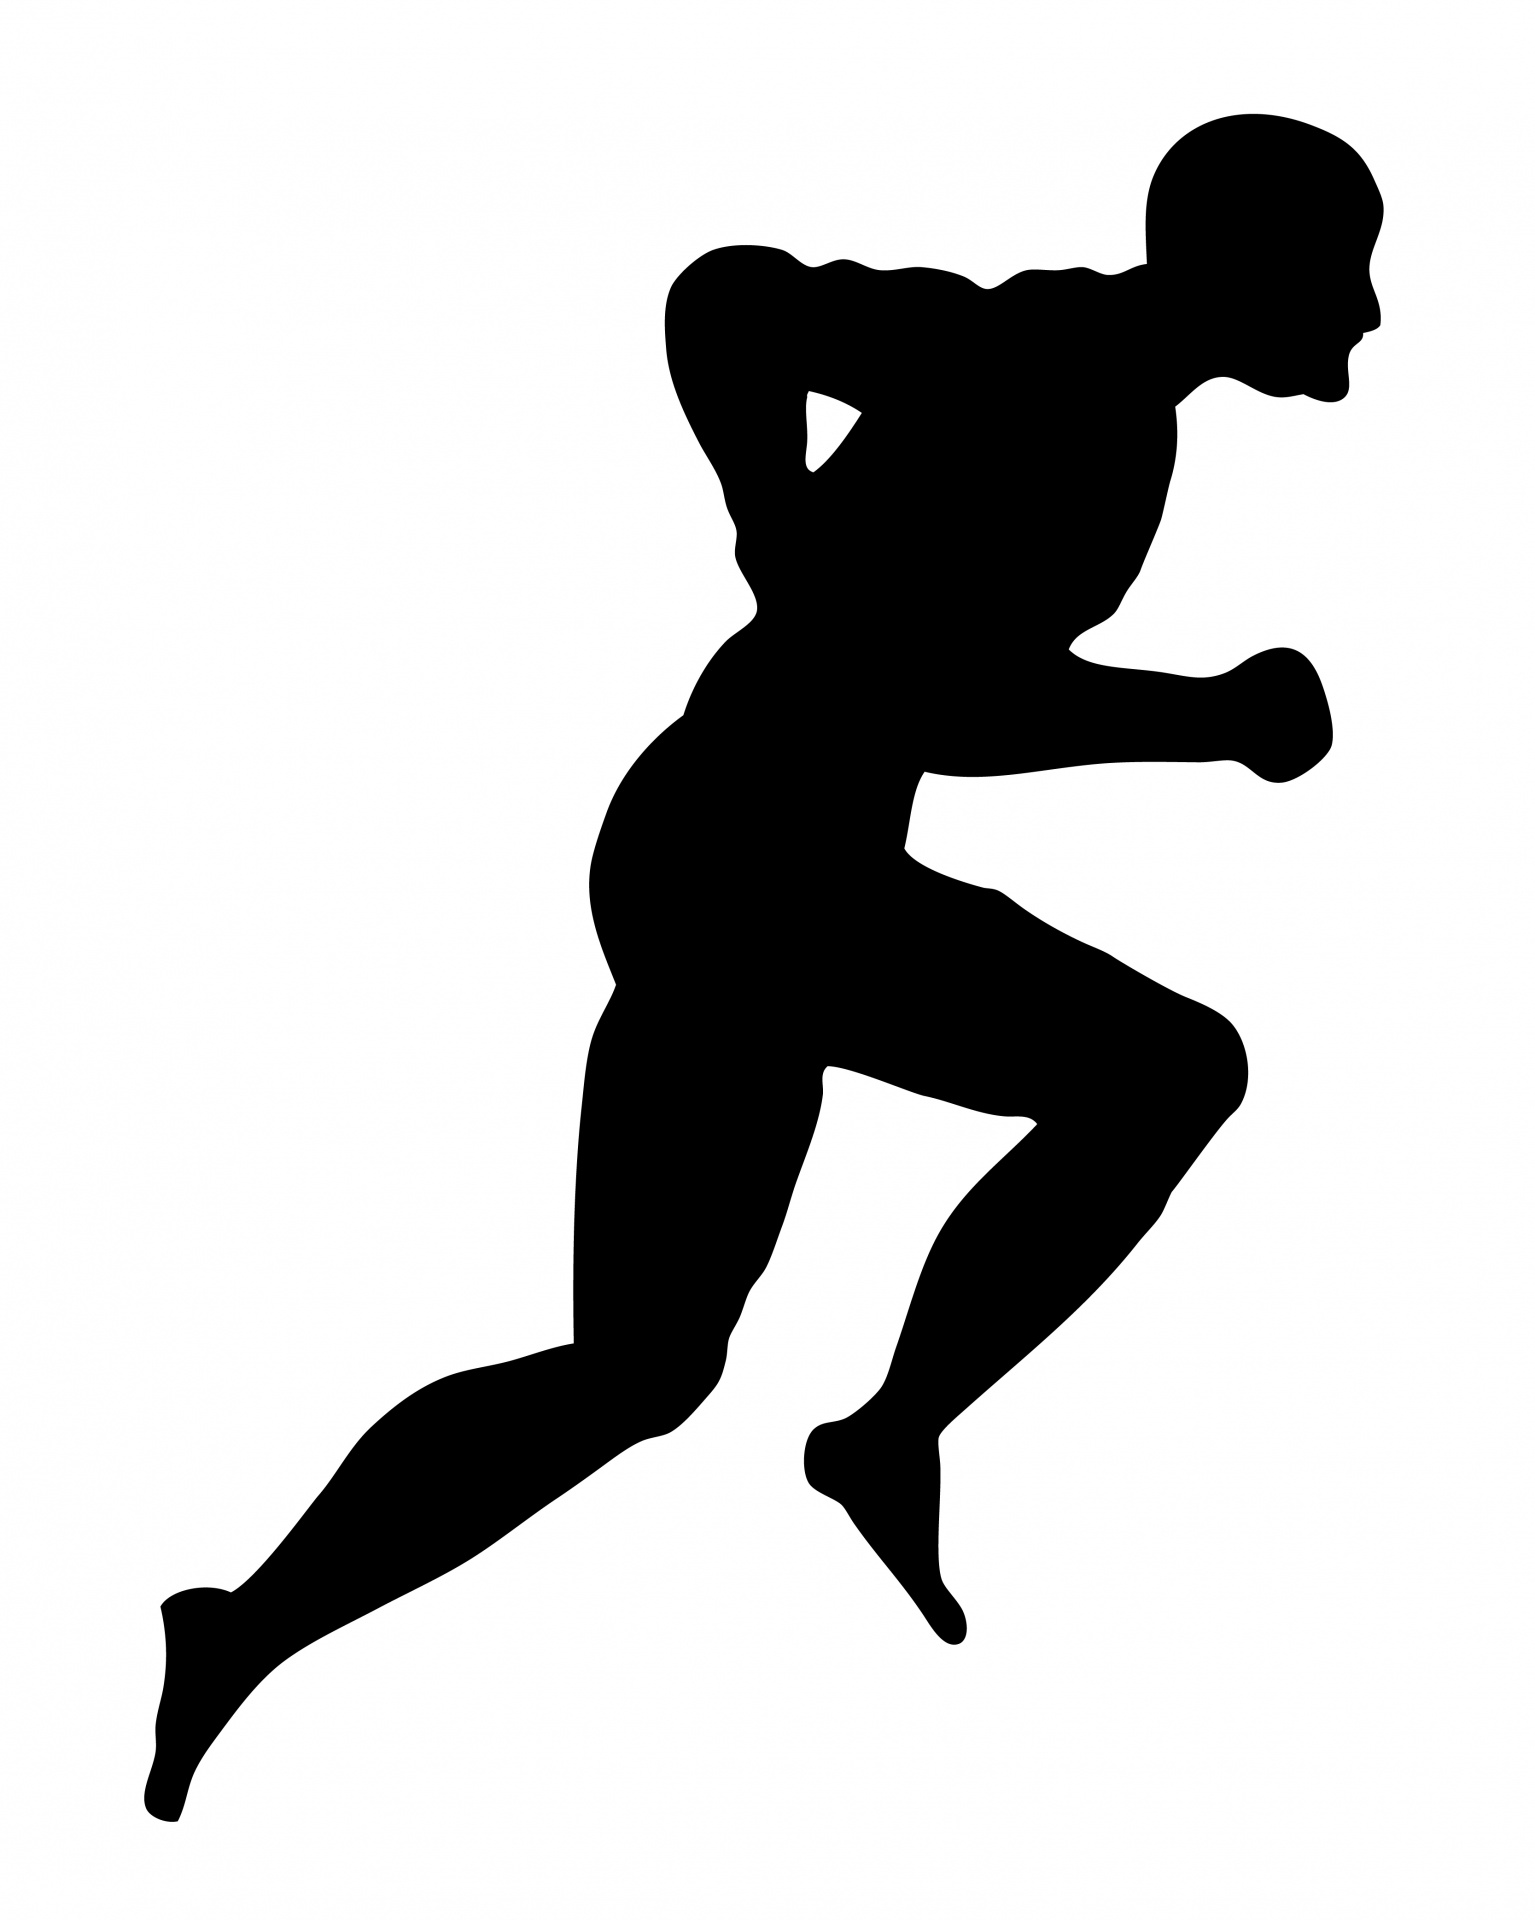 1535x1920 Running Man Silhouette Clipart Free Stock Photo